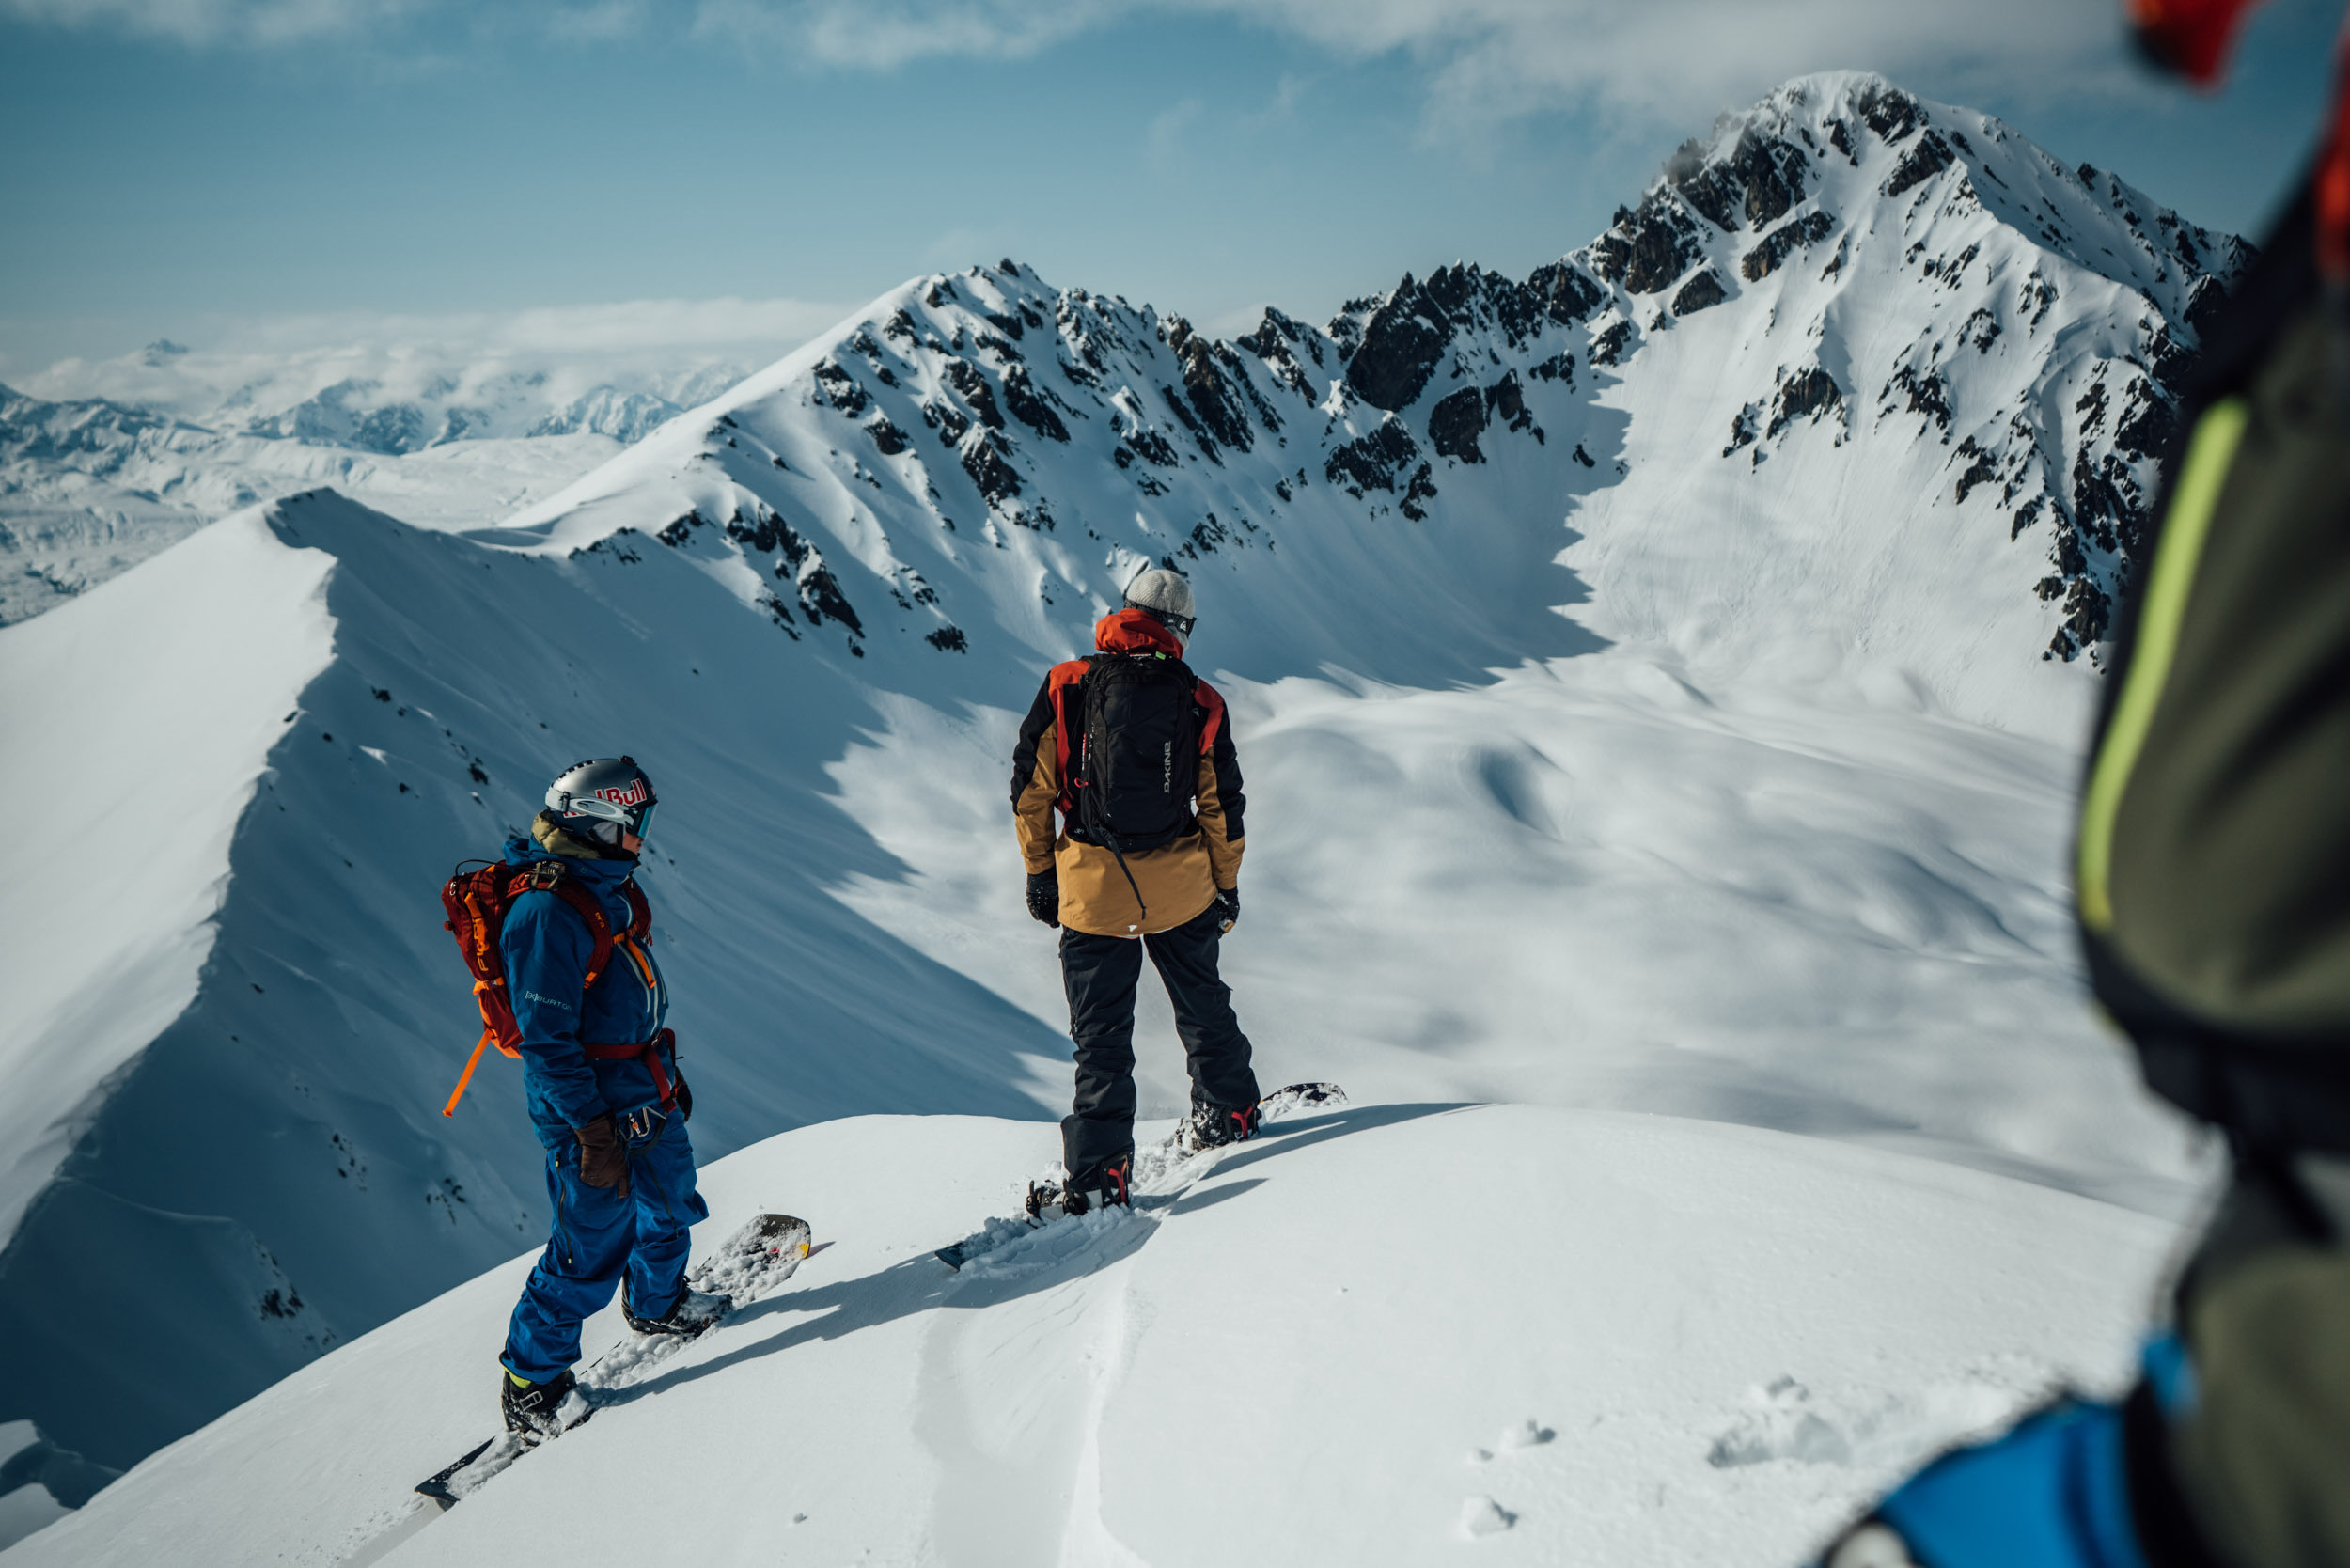 A group of snowboarders take in the view of Tordrillo Mountains in Alaska before snowboarding down a snowy slope.